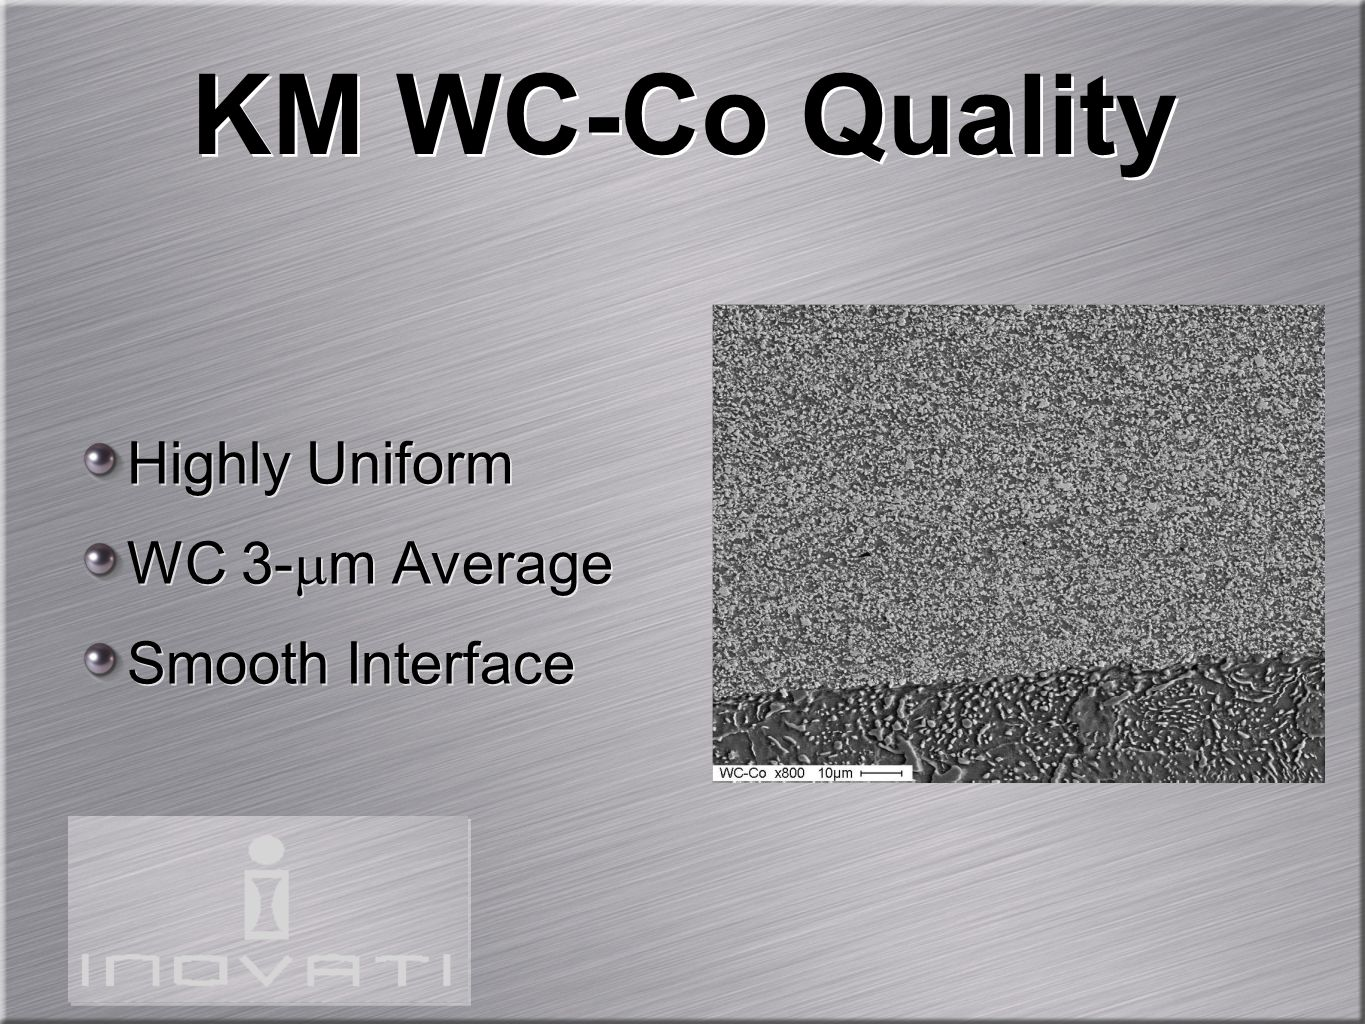 KM WC-Co Quality Highly Uniform WC 3-m Average Smooth Interface